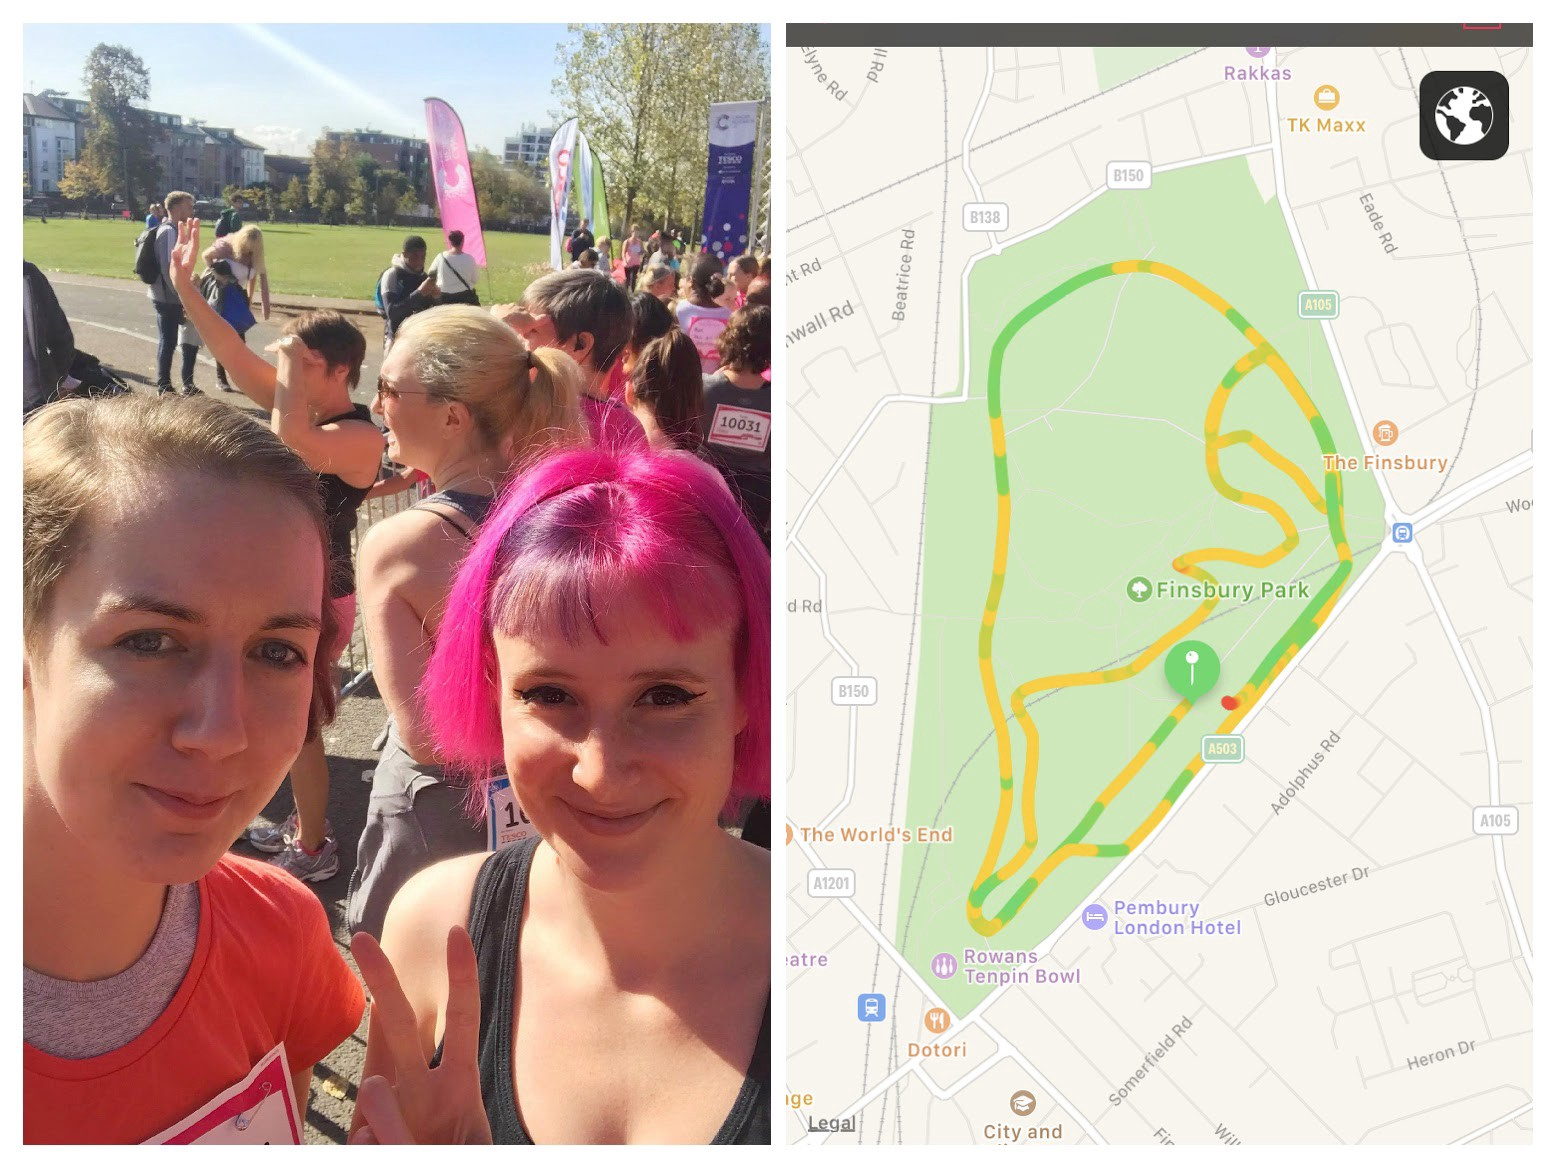 My friend Jo and I ran a 5km race for life in Finsbury Park but it was mismanaged and we had to make our own 5km route up!